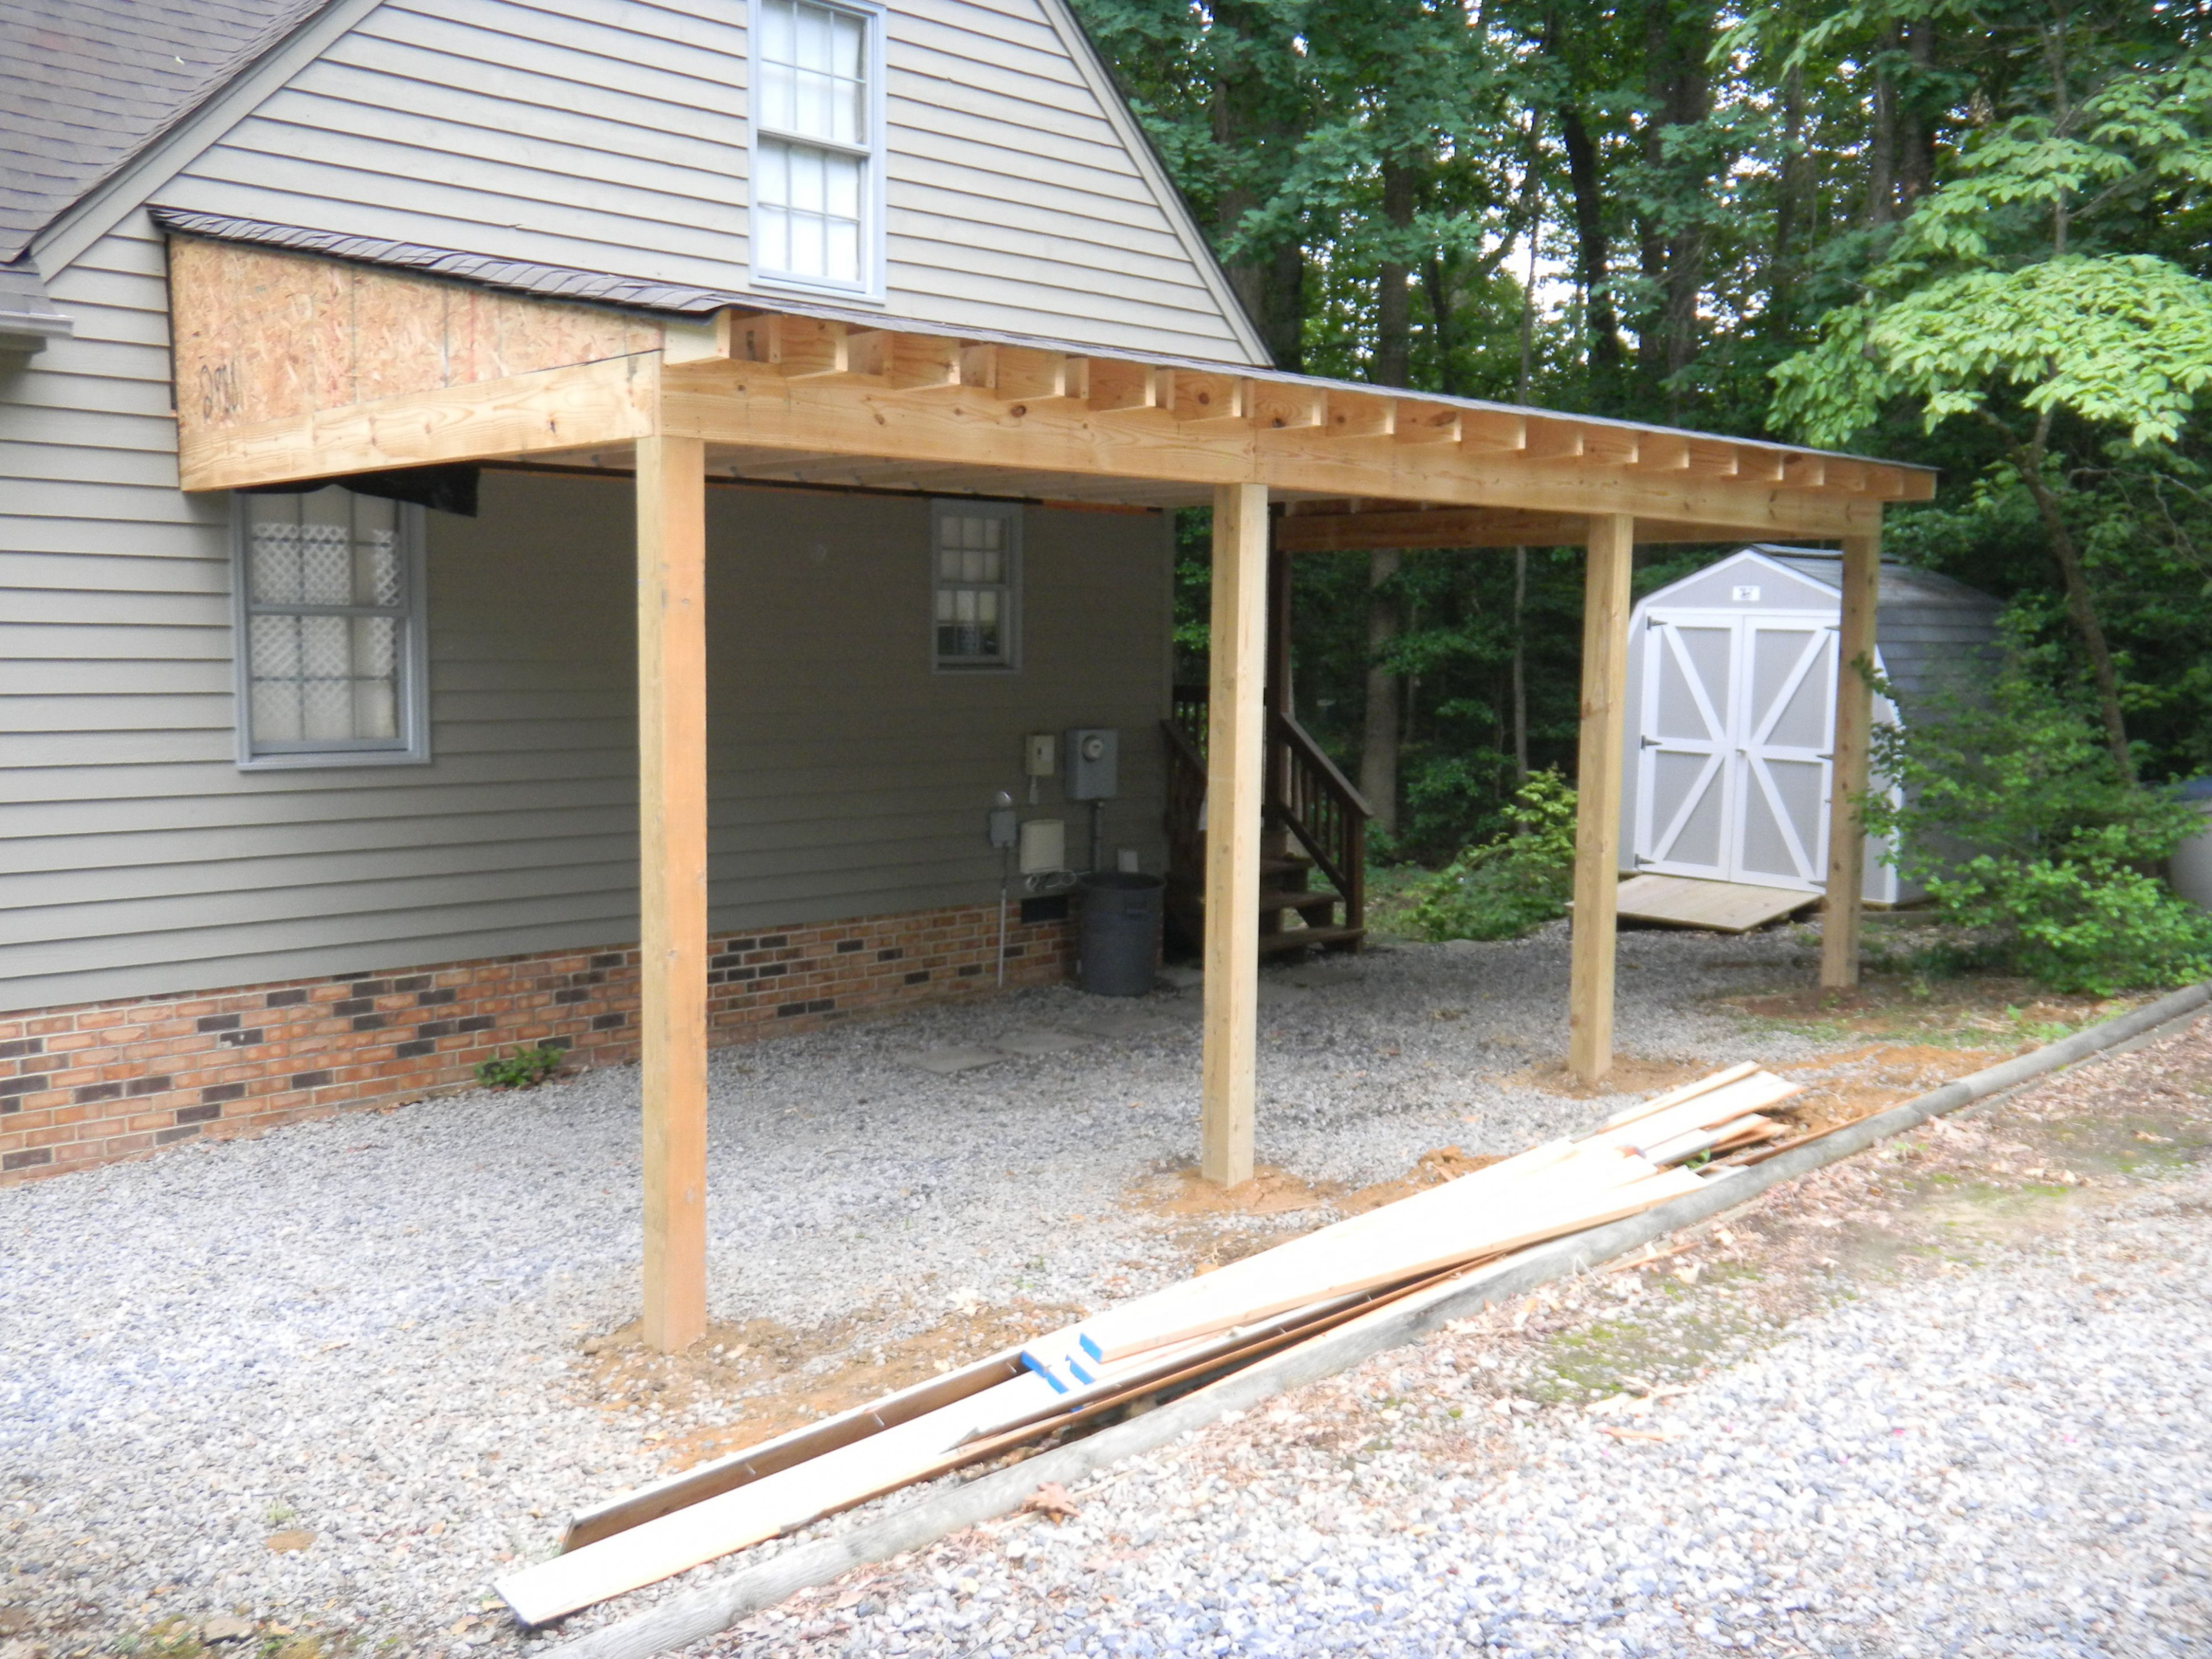 Carport Additions | Progress Photo Of Carport In ..